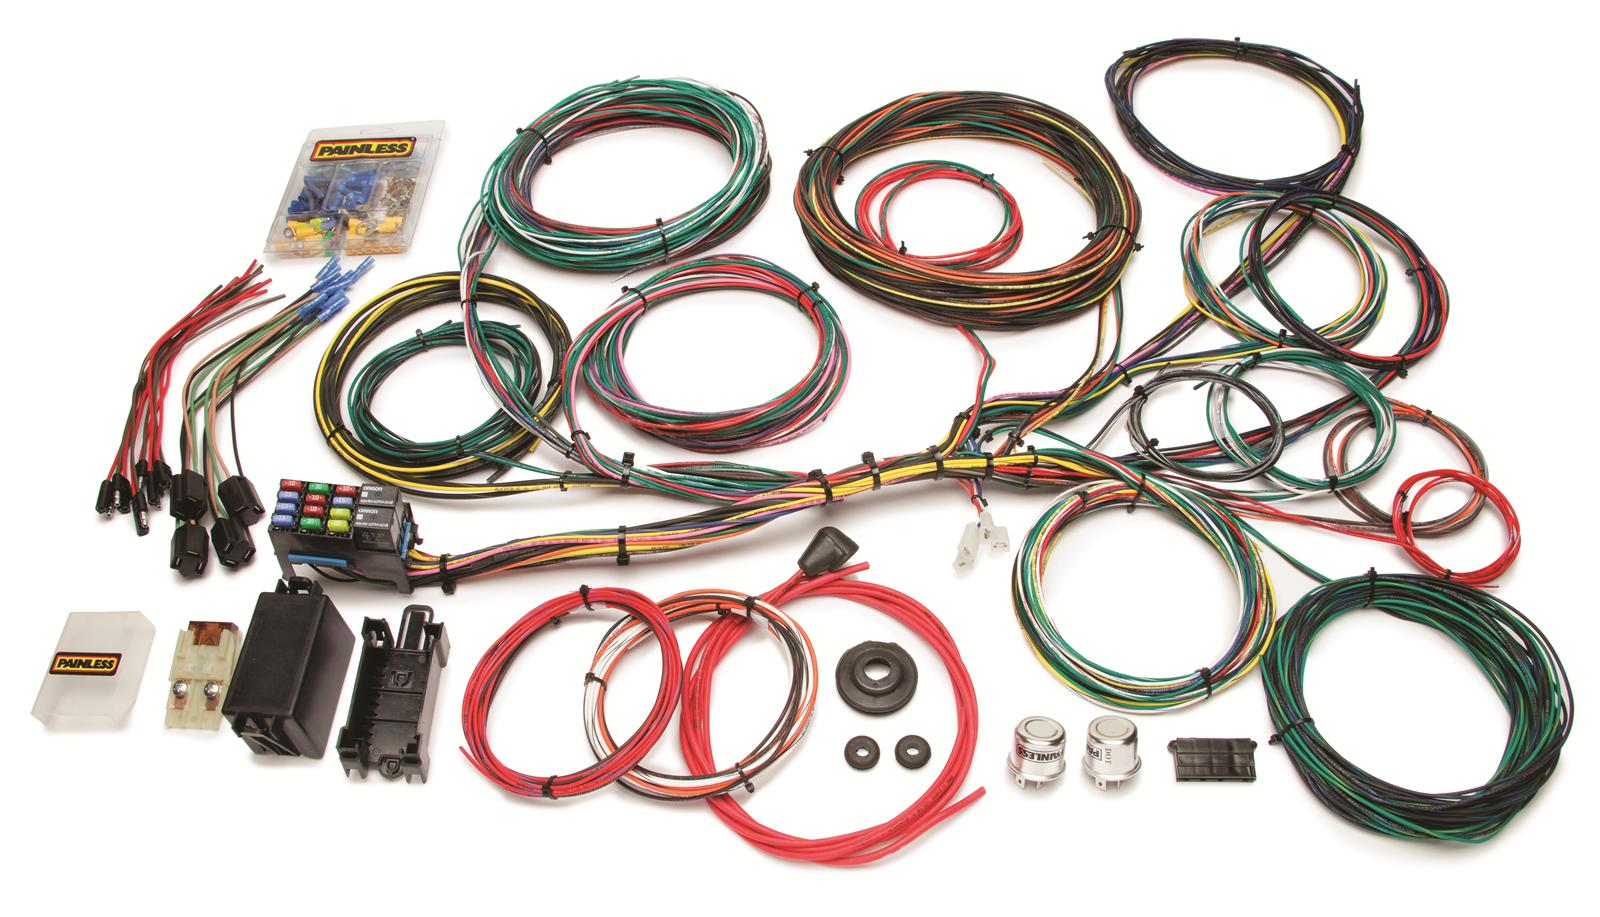 Universal 21 Circuit Wiring Harness Diagram On Specialties Shipping Painless Performance Ford Color Coded Harnesses